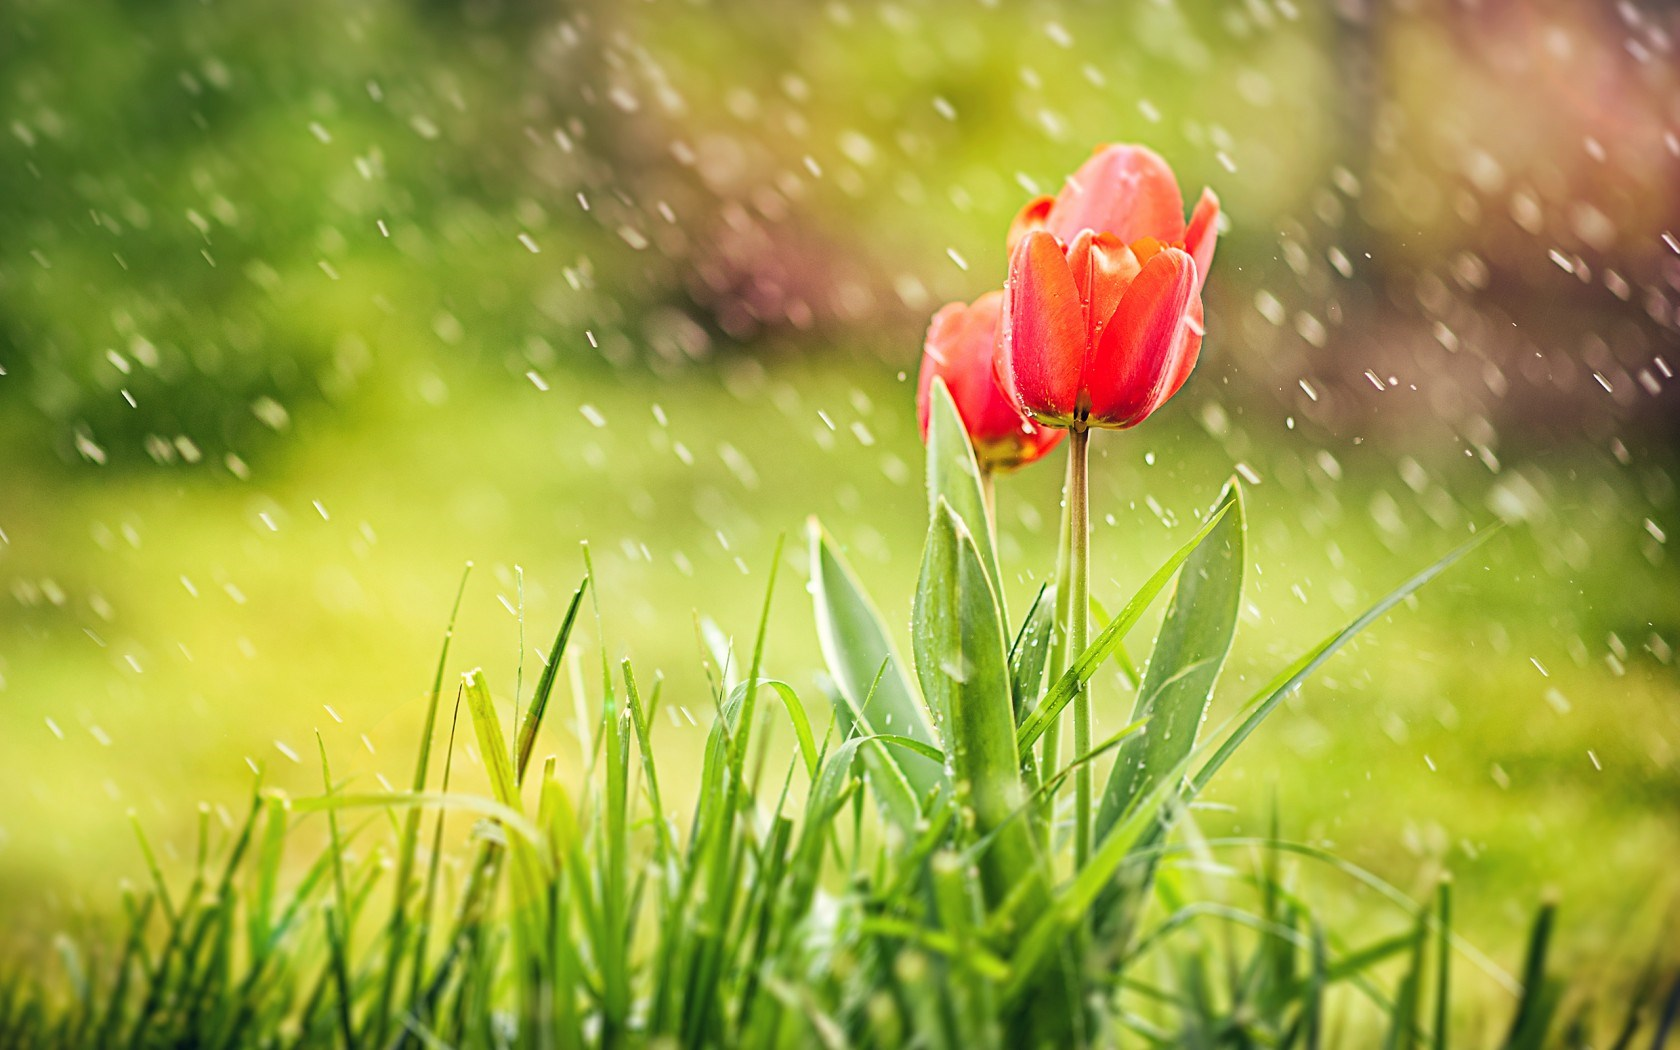 Spring wallpapers high quality download free - Backgrounds springtime ...